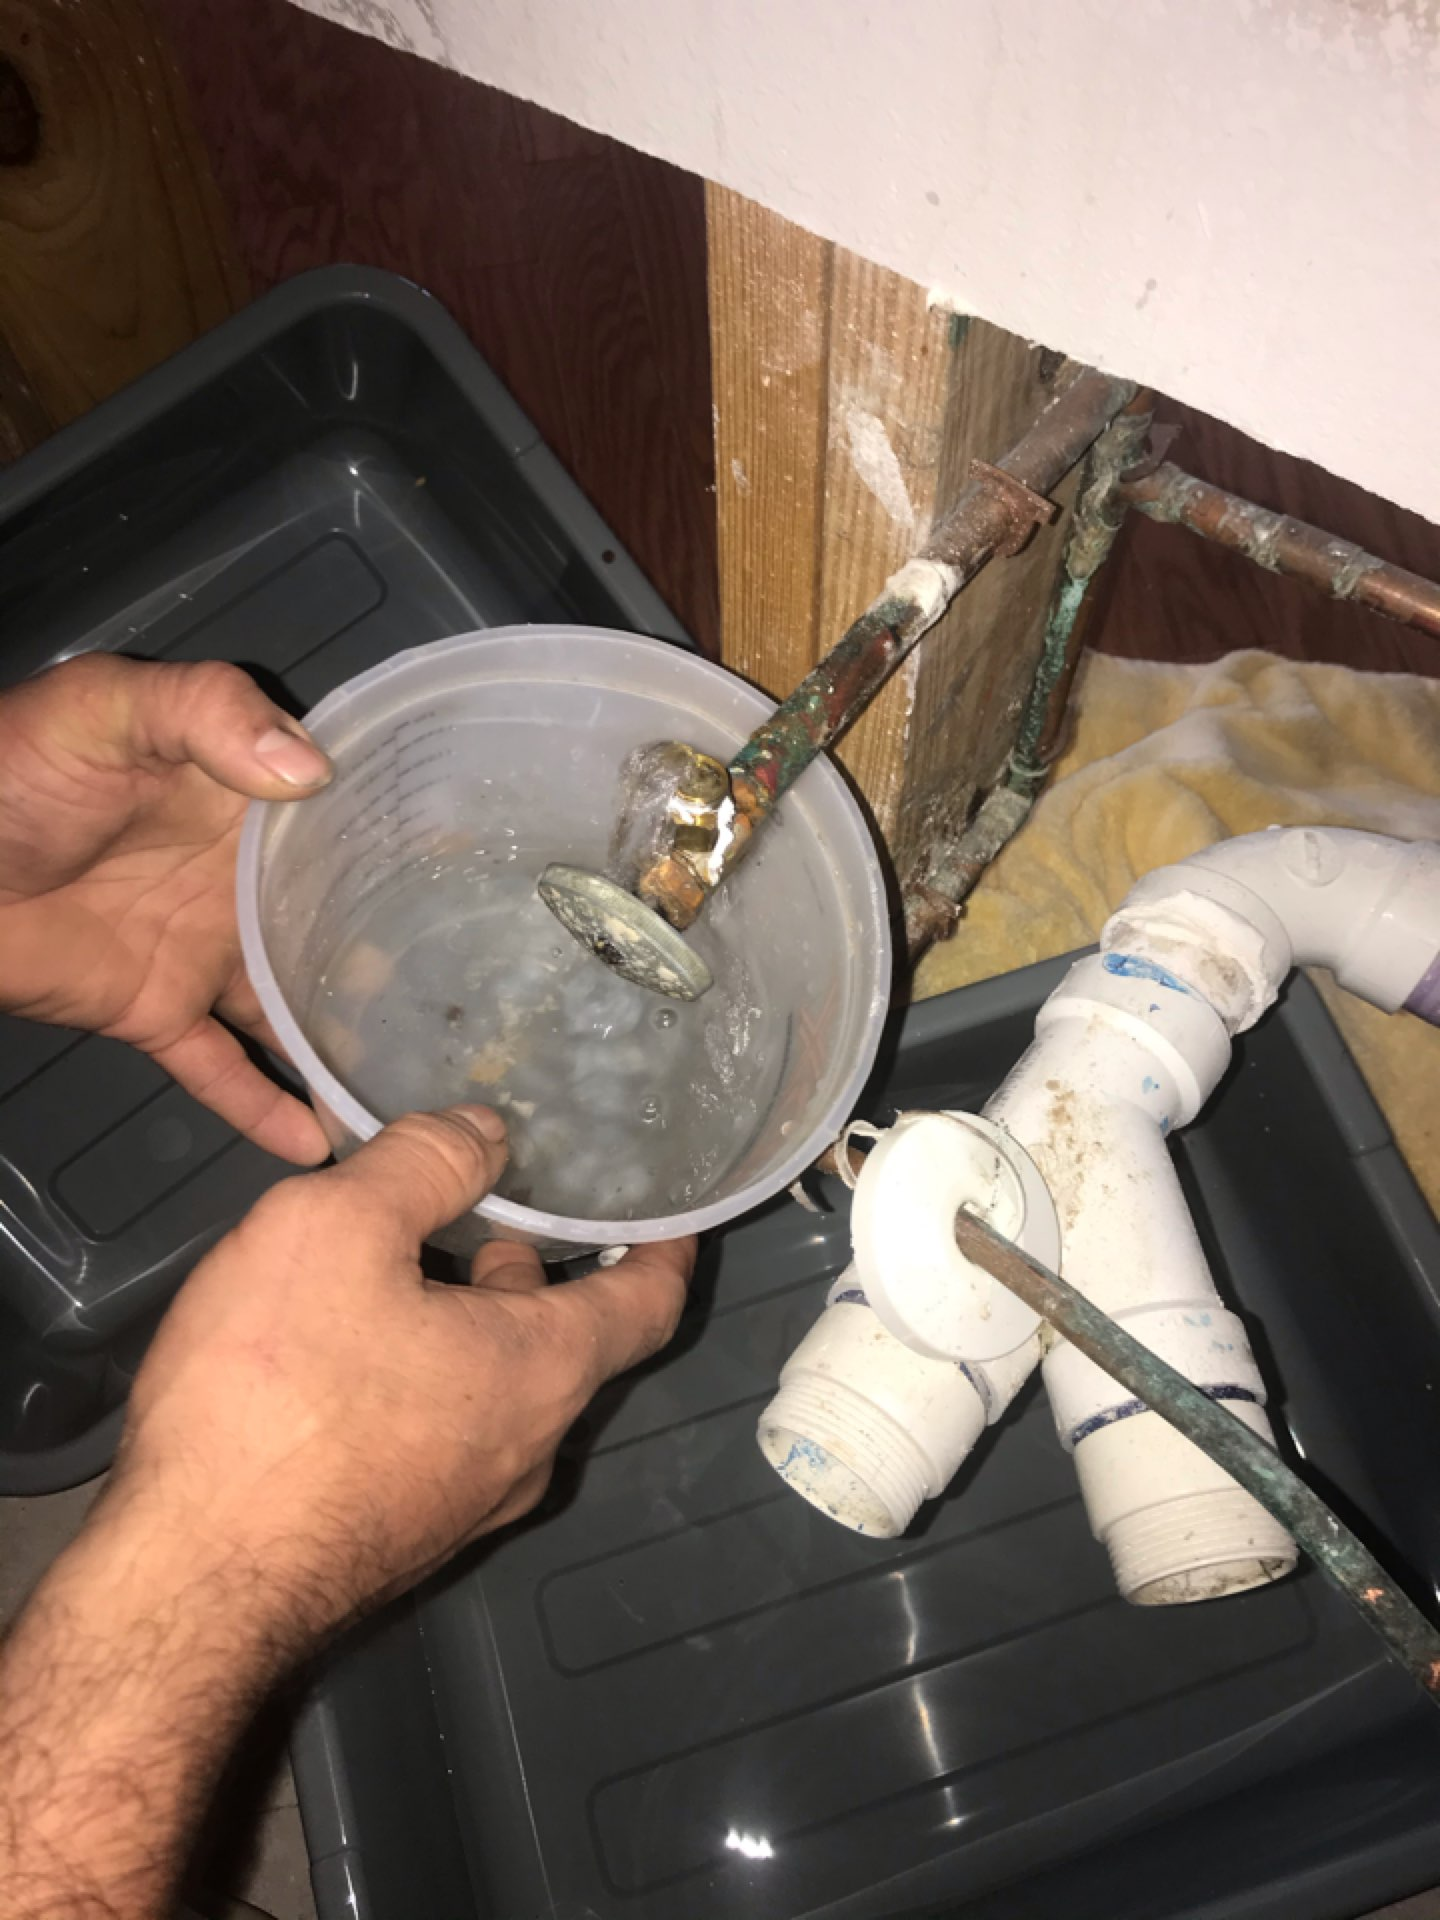 Pearland, TX - Free assessment.Emergency stop replacement in kitchen. Pearland Texas